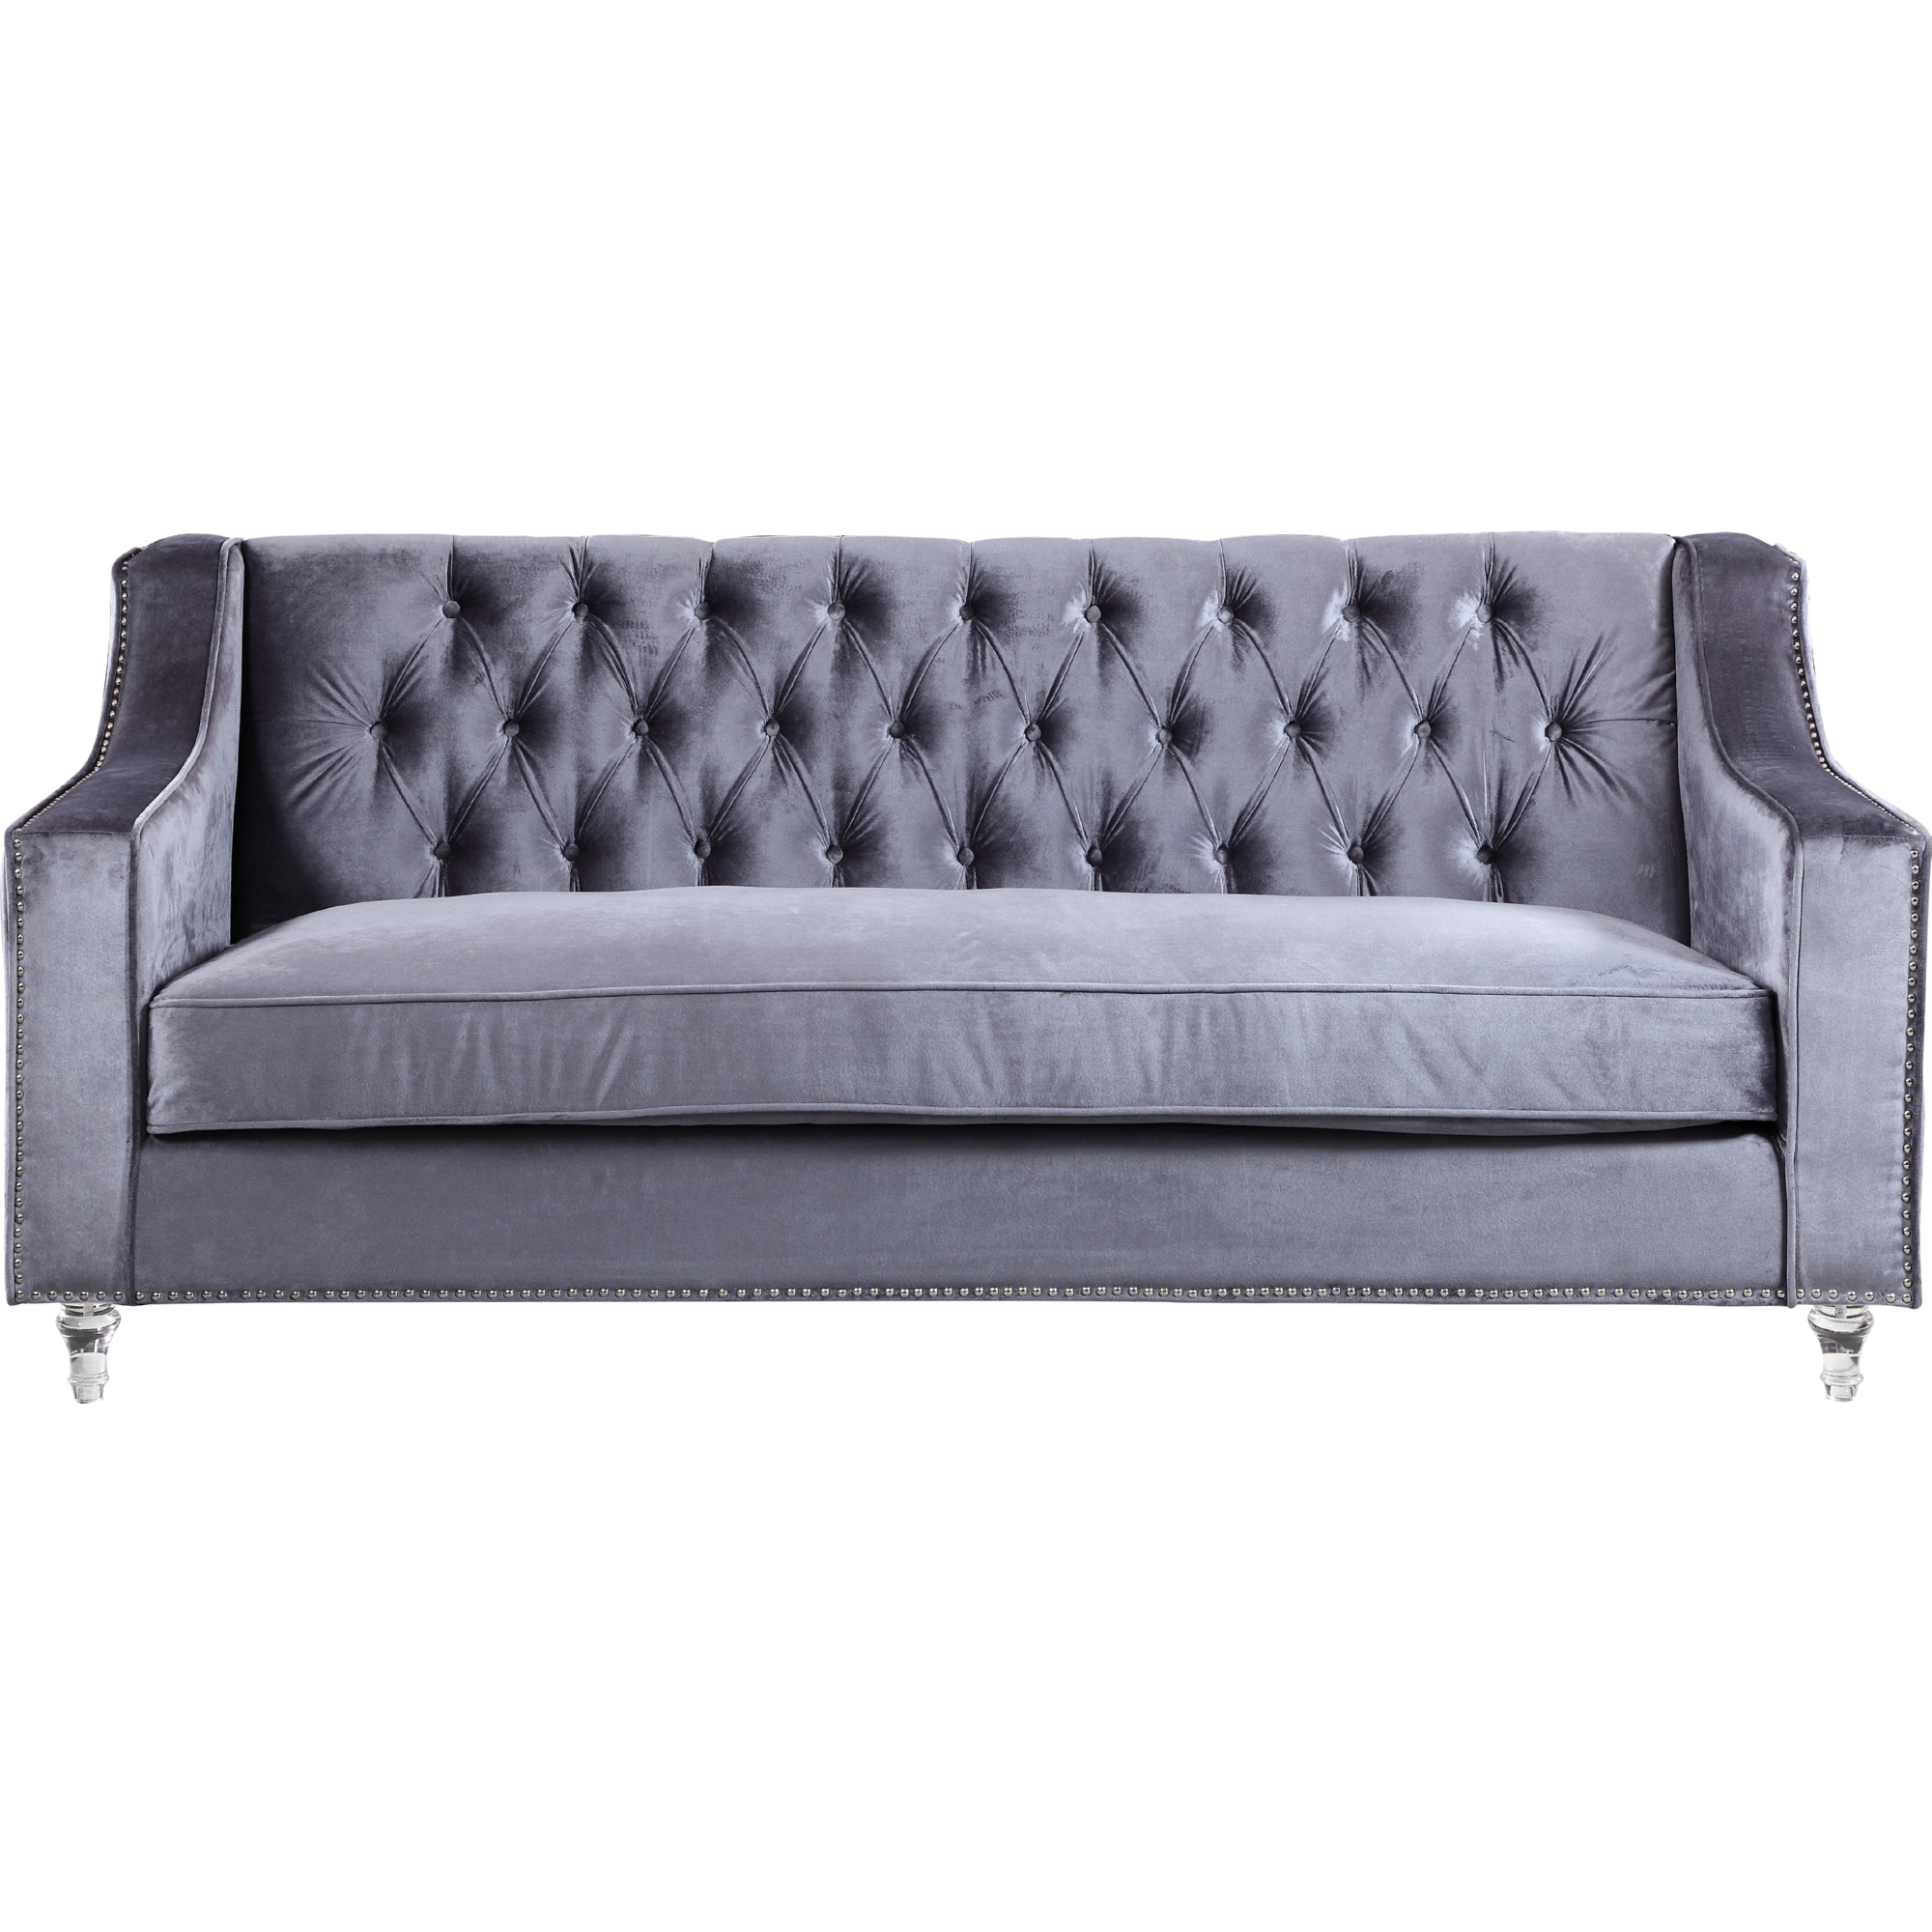 Chic Home FSA2579 Dylan Sofa in Tufted Grey Velvet on Round